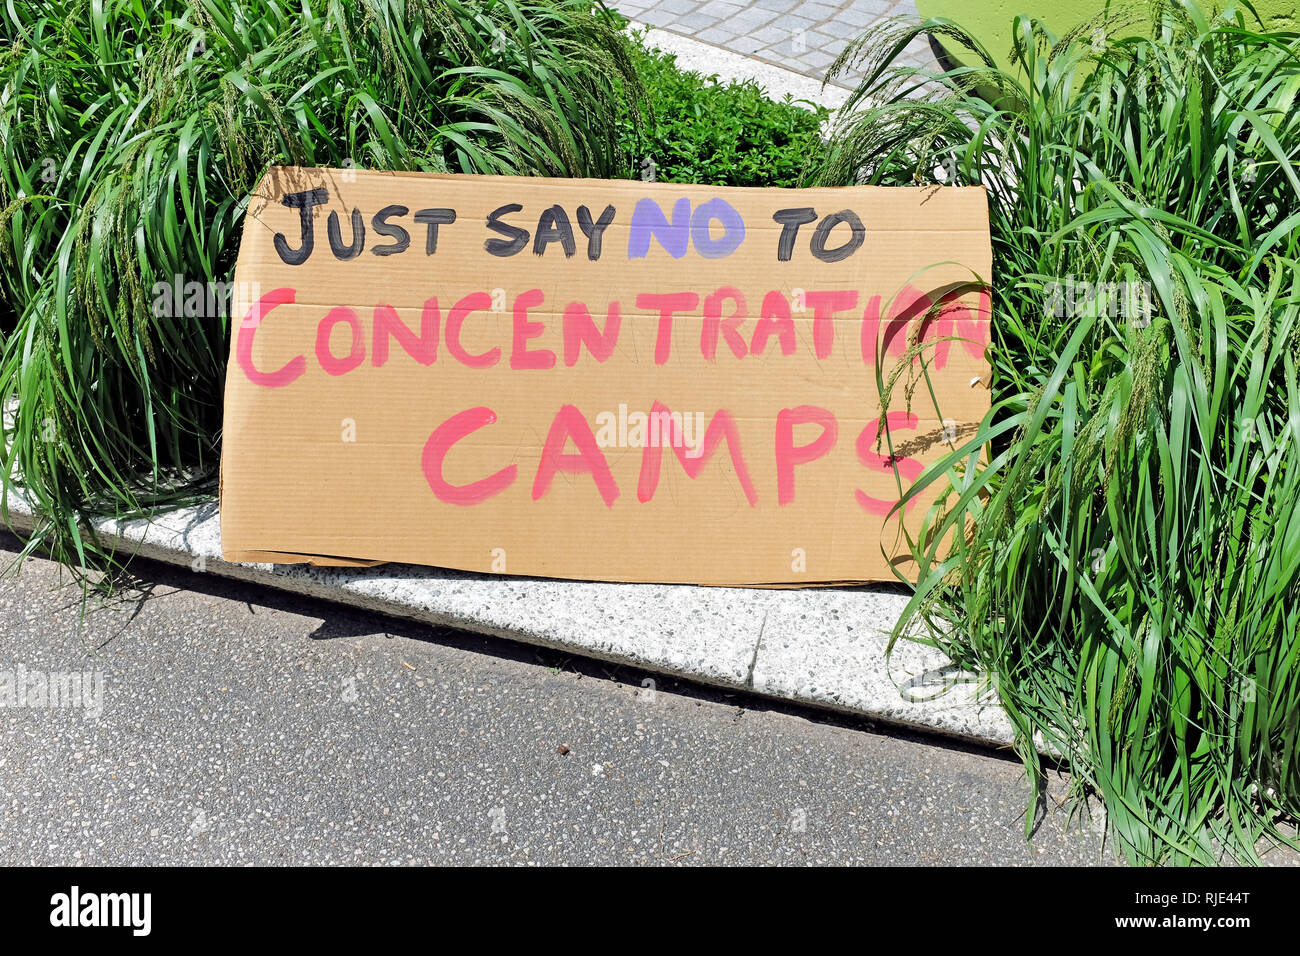 A sign at a rally opposing the Trump Administration immigration policies states 'Just Say No to Concentration Camps'. - Stock Image